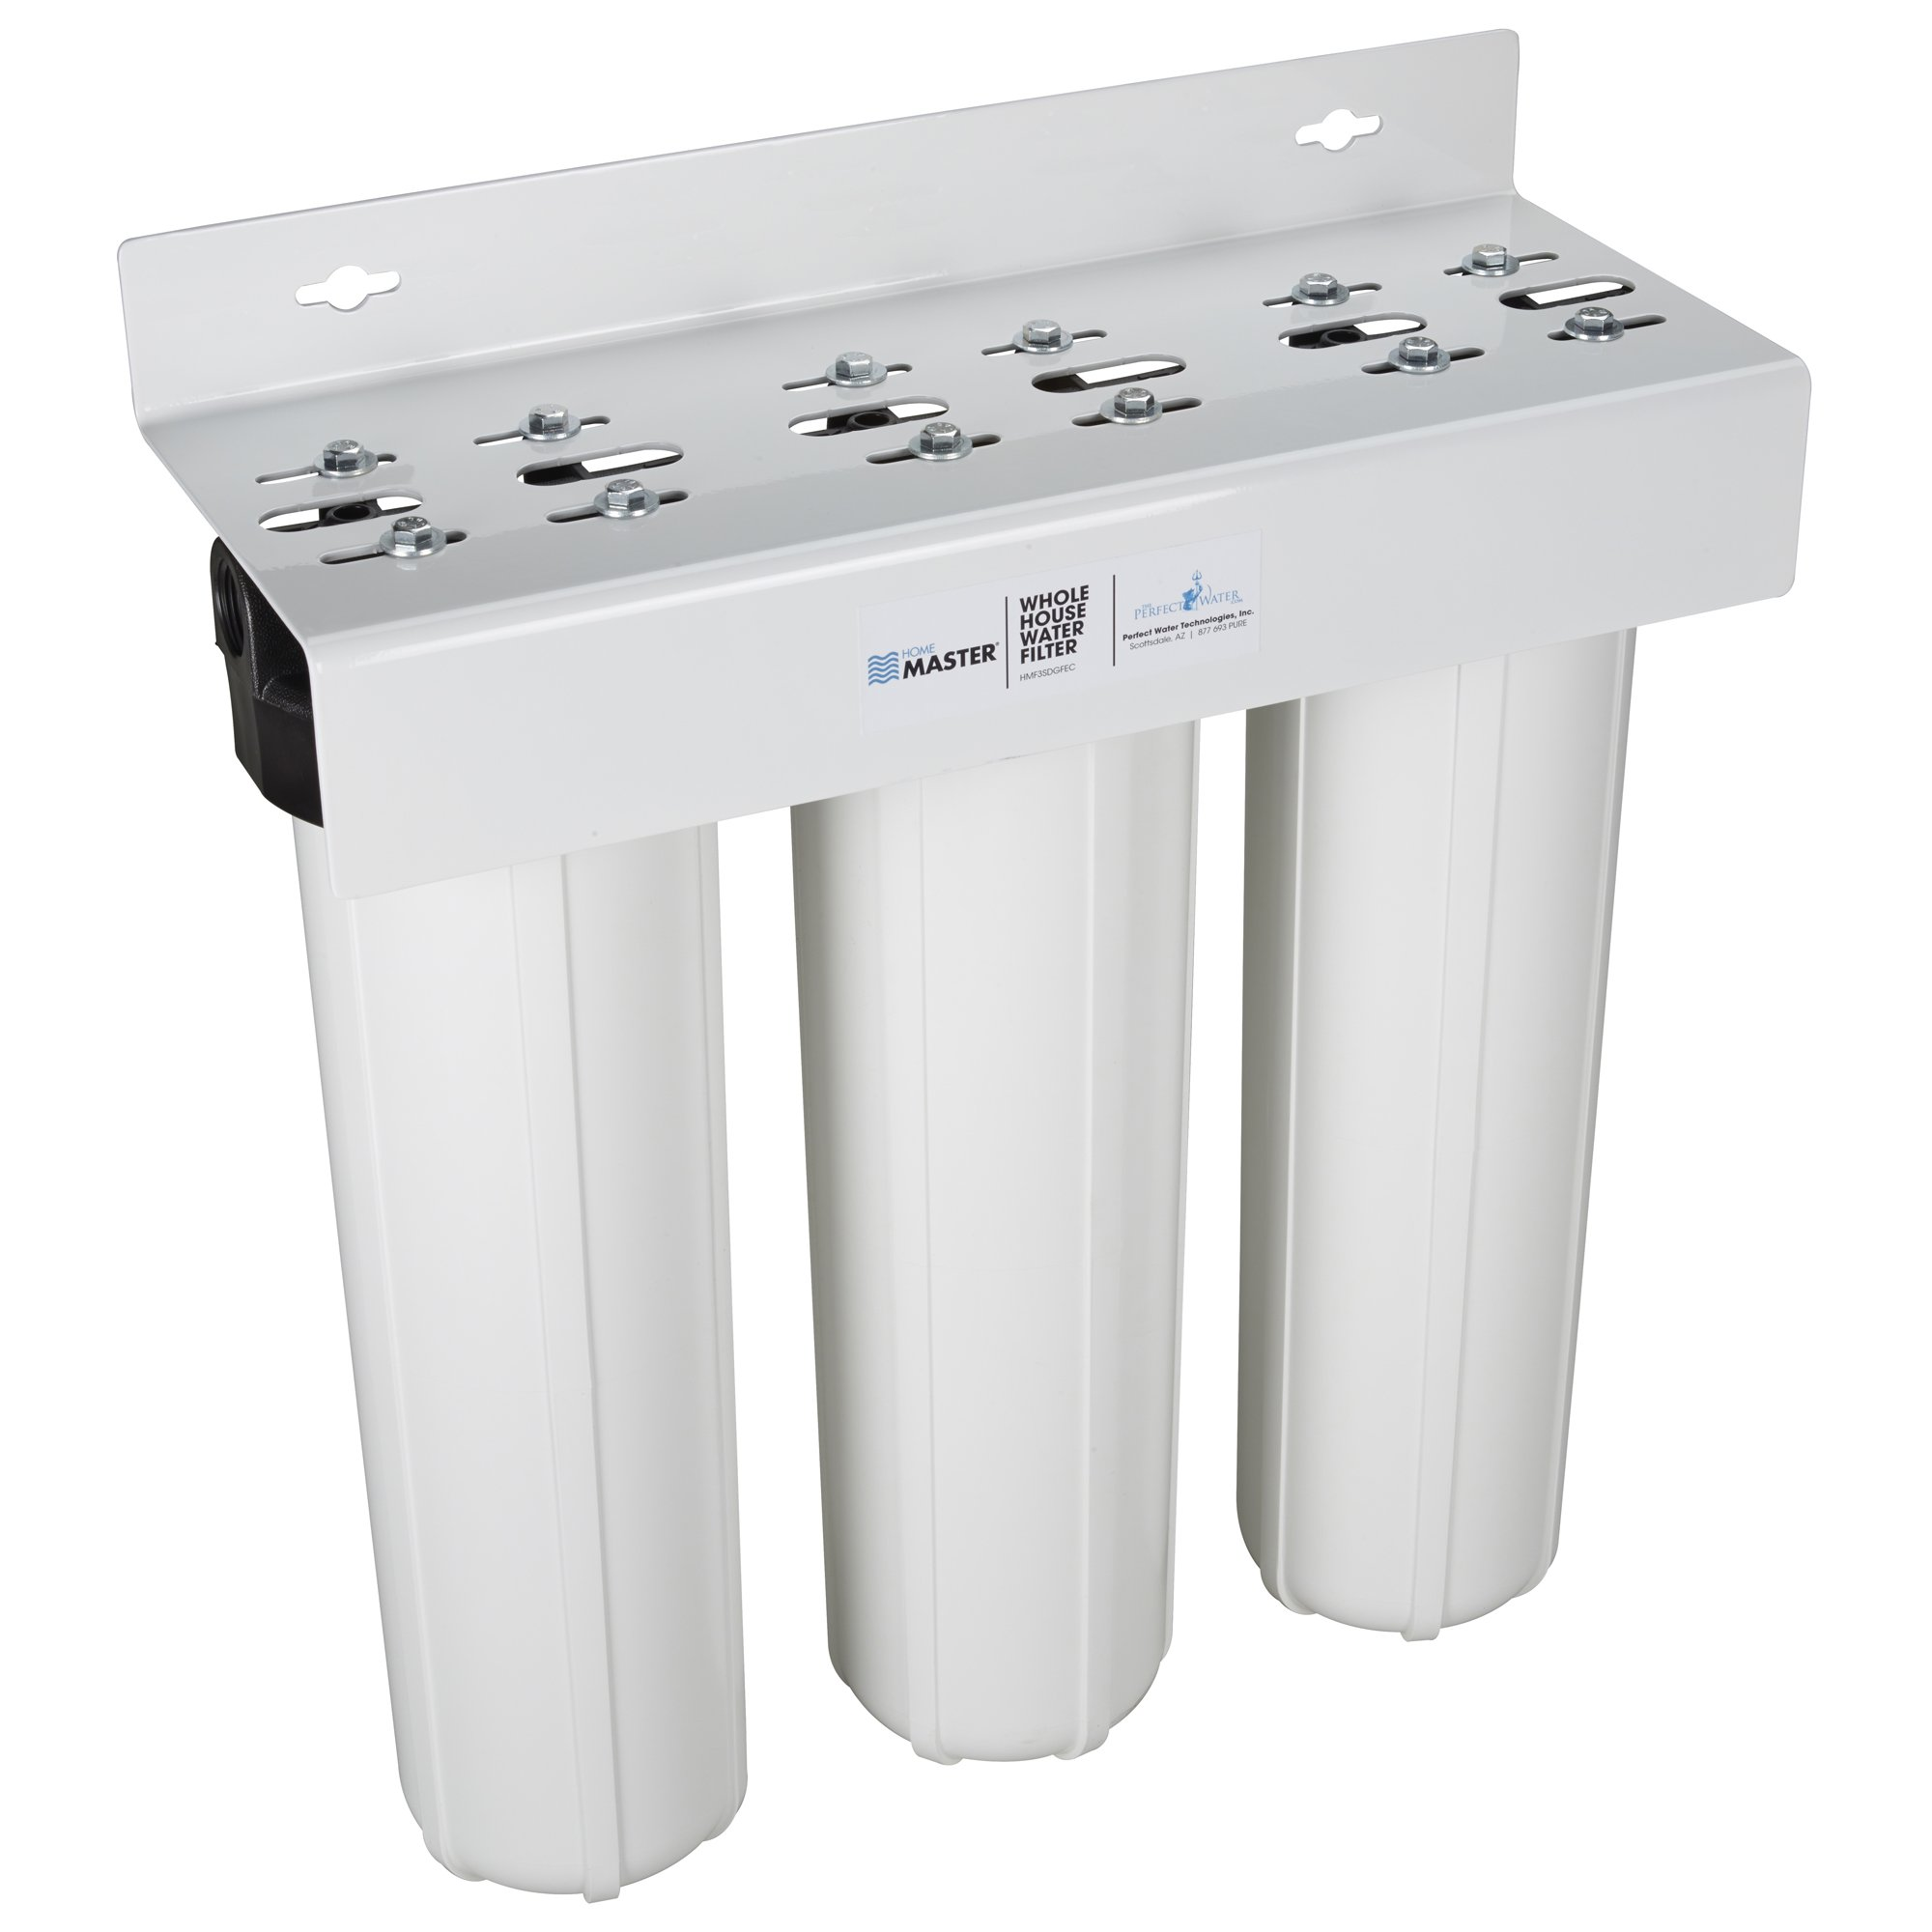 Home Master HMF3SDGFEC Whole House 3-Stage Water Filter with Fine Sediment, Iron, and Carbon by Home Master